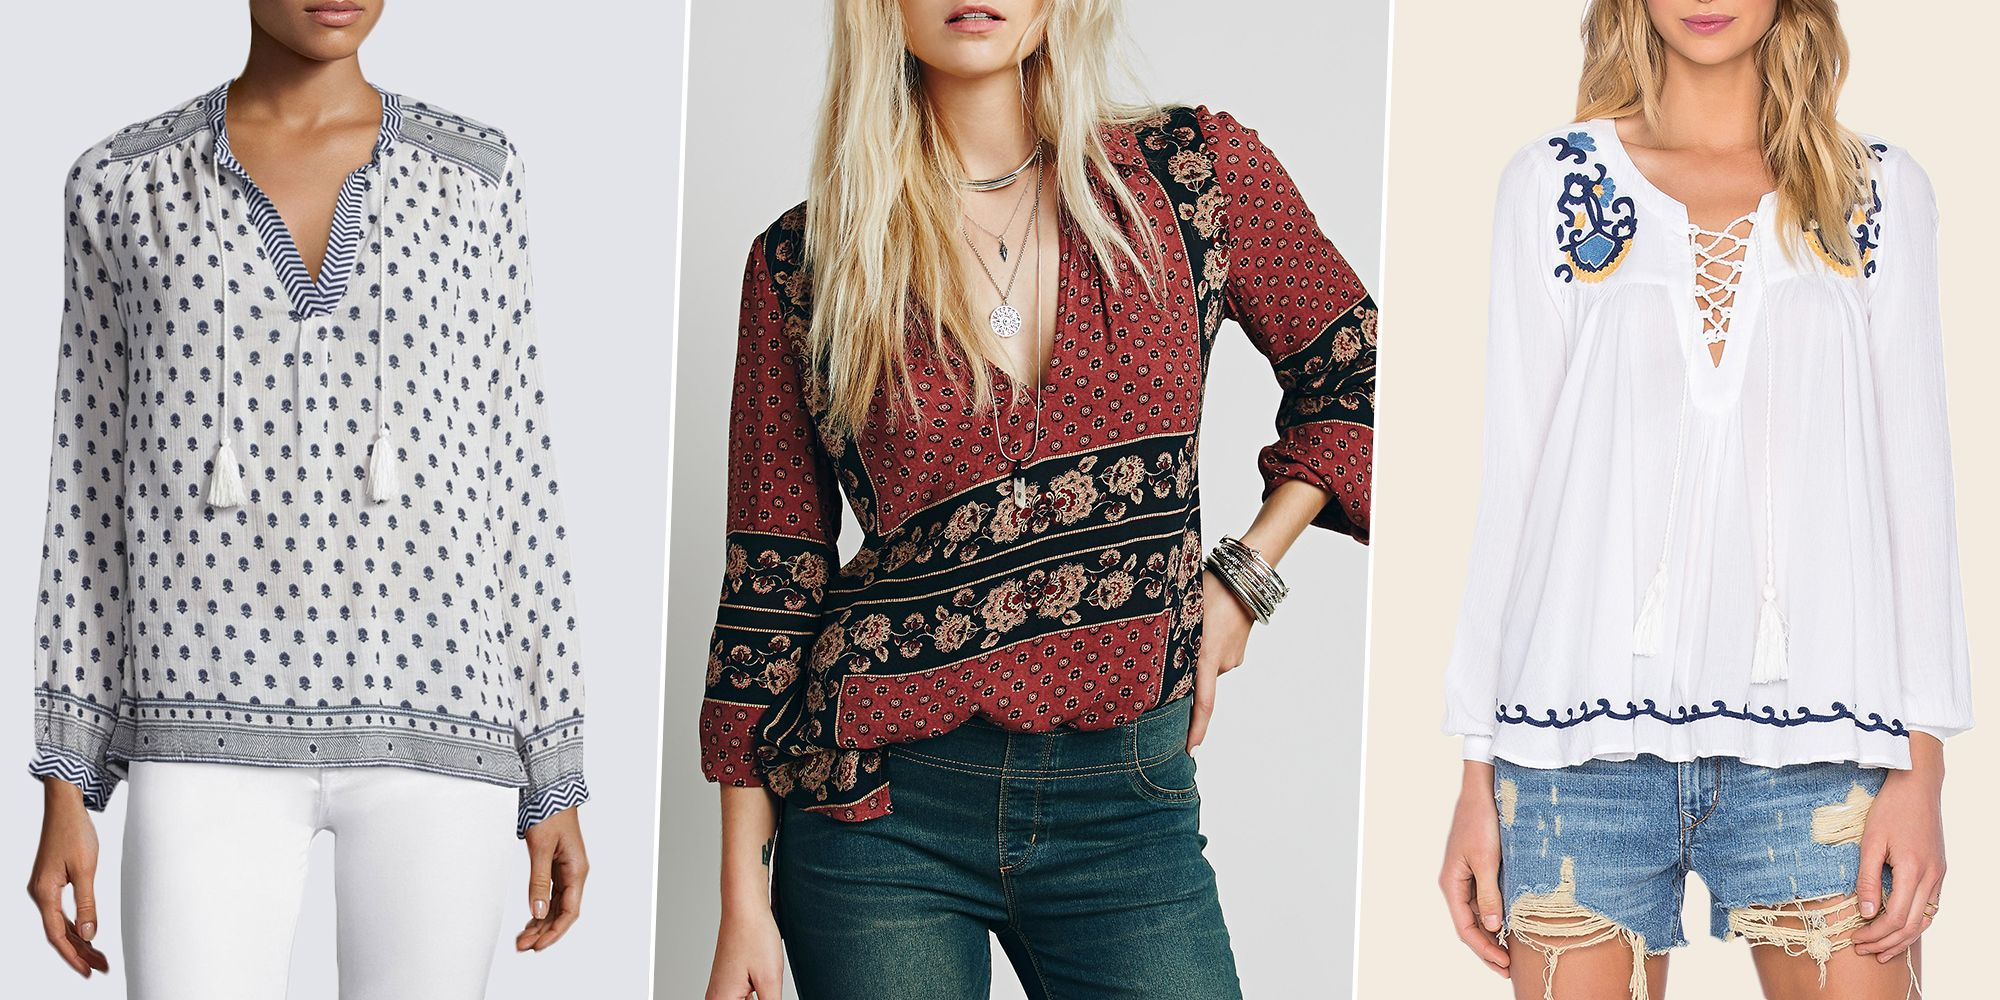 9 Best Peasant Tops for 2018 - Tunics and Peasant Tops for Women 0d767248f